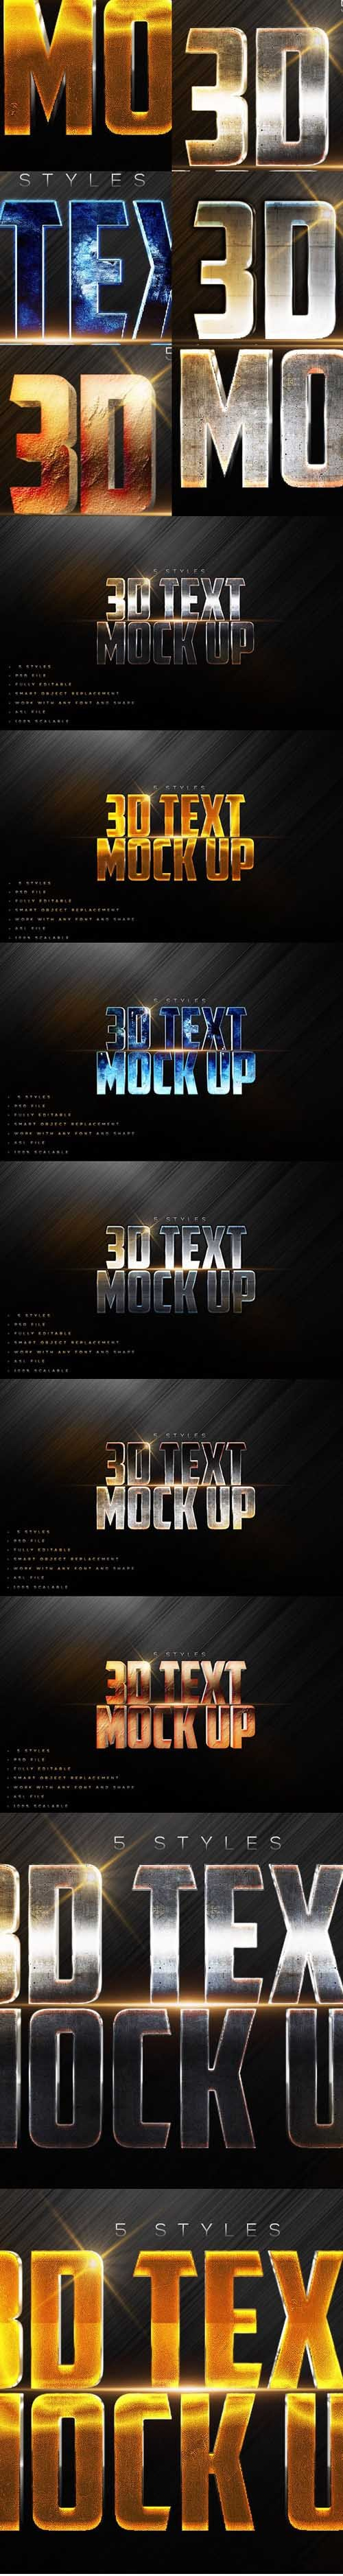 Graphicriver - Marvelous Text Styles V30 20180746